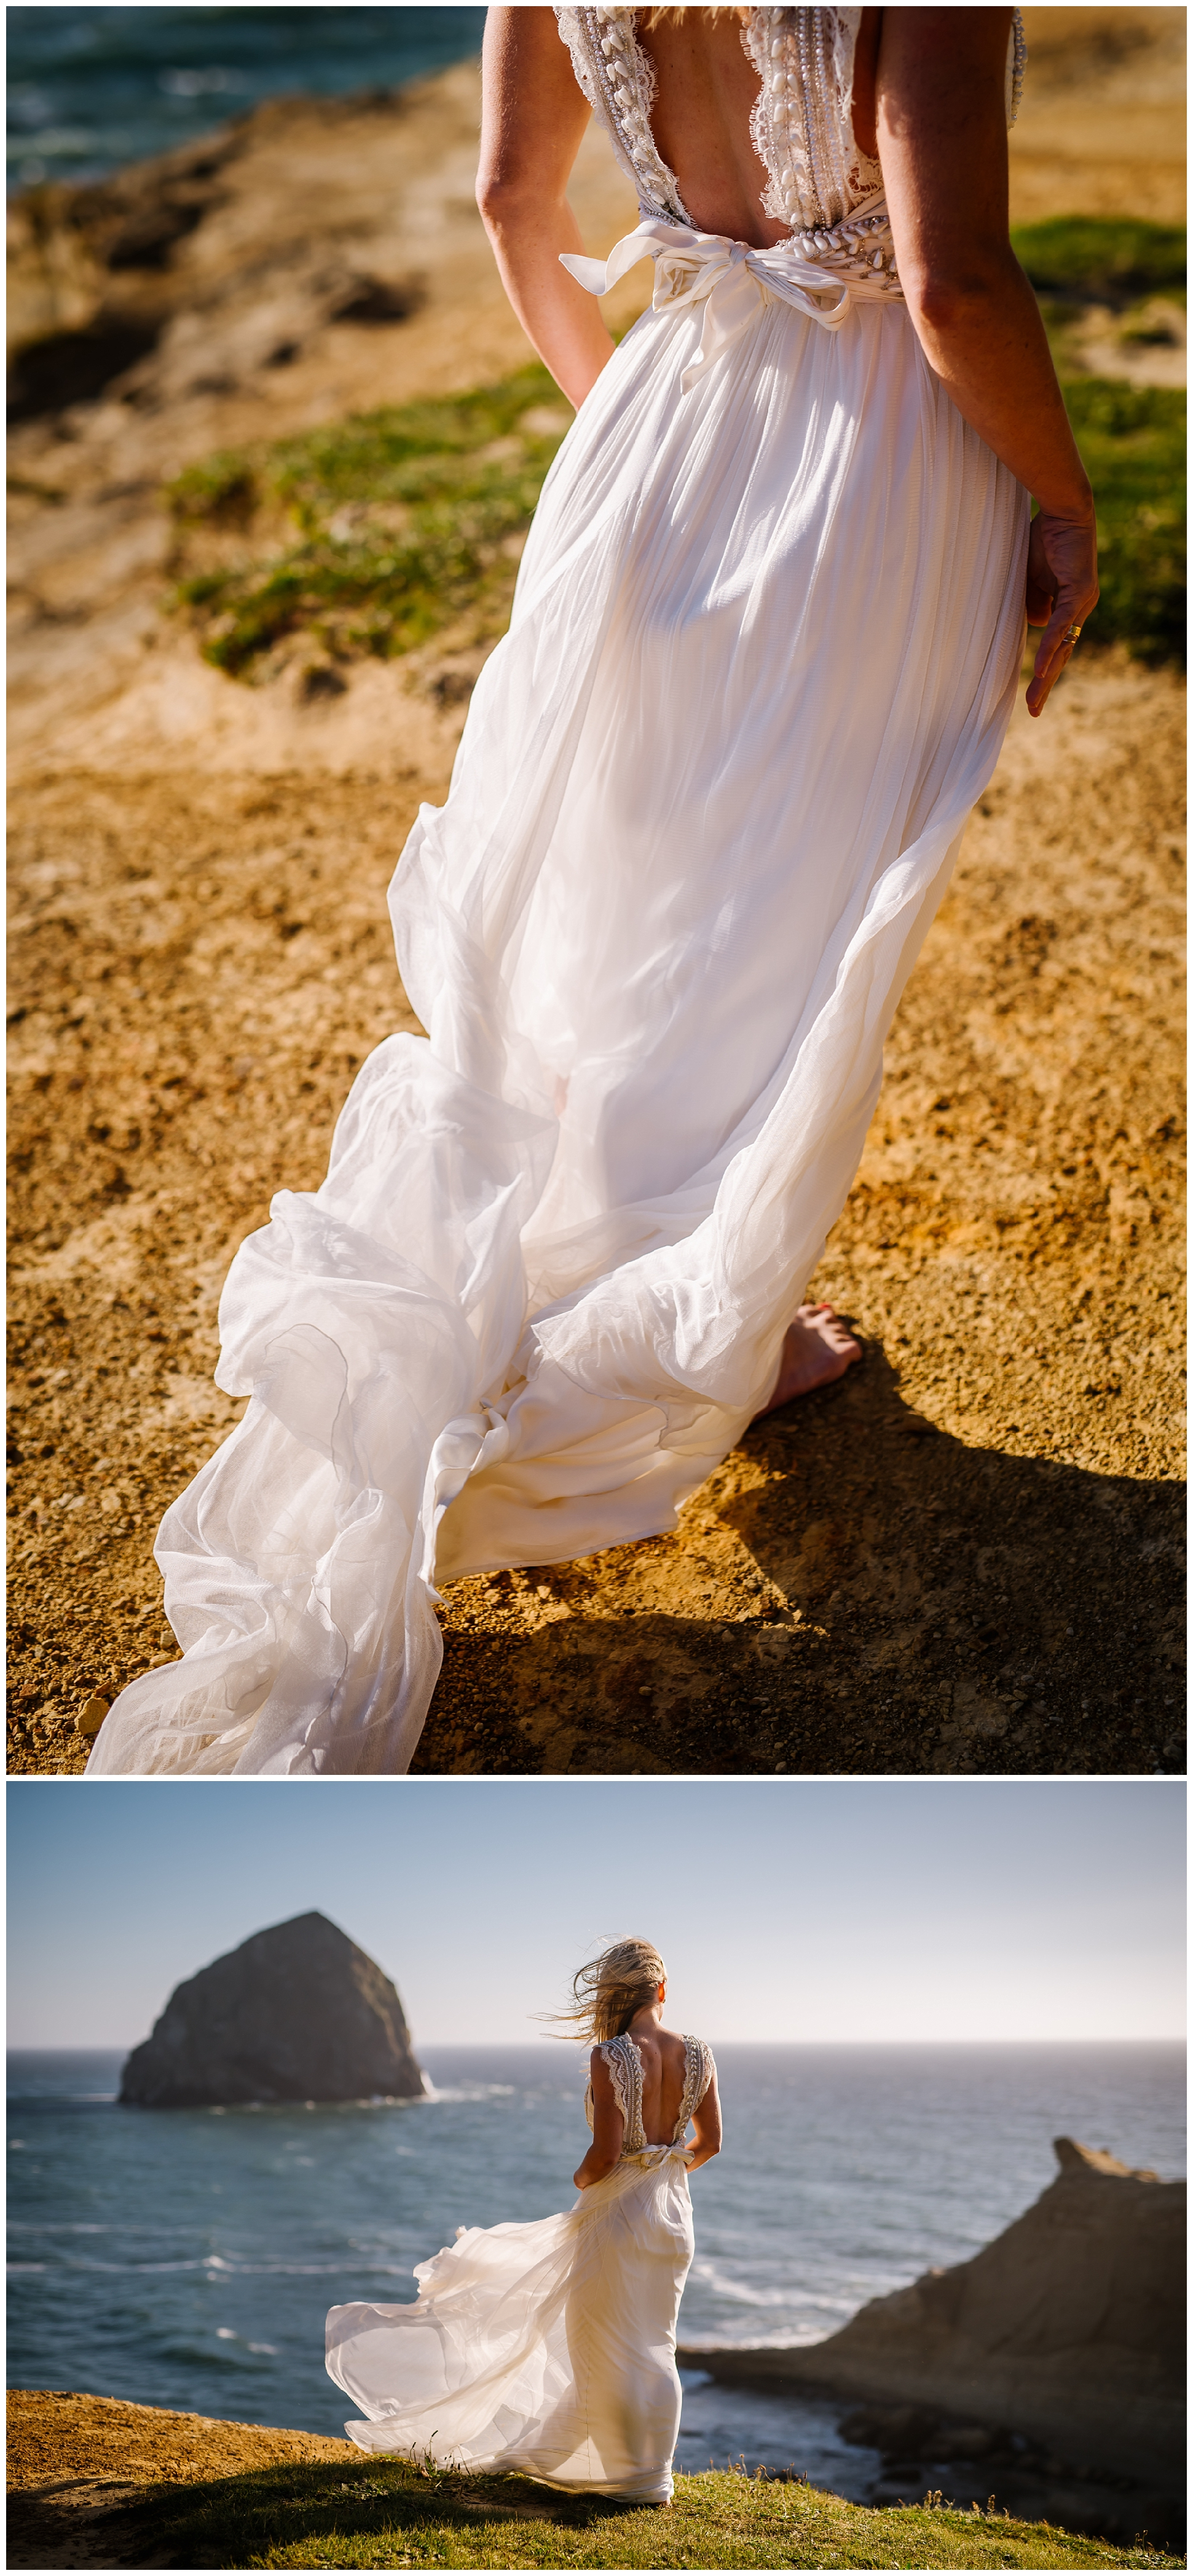 Cape-kiwanda-bridal-portrait-destination-wedding-photographer_0016.jpg